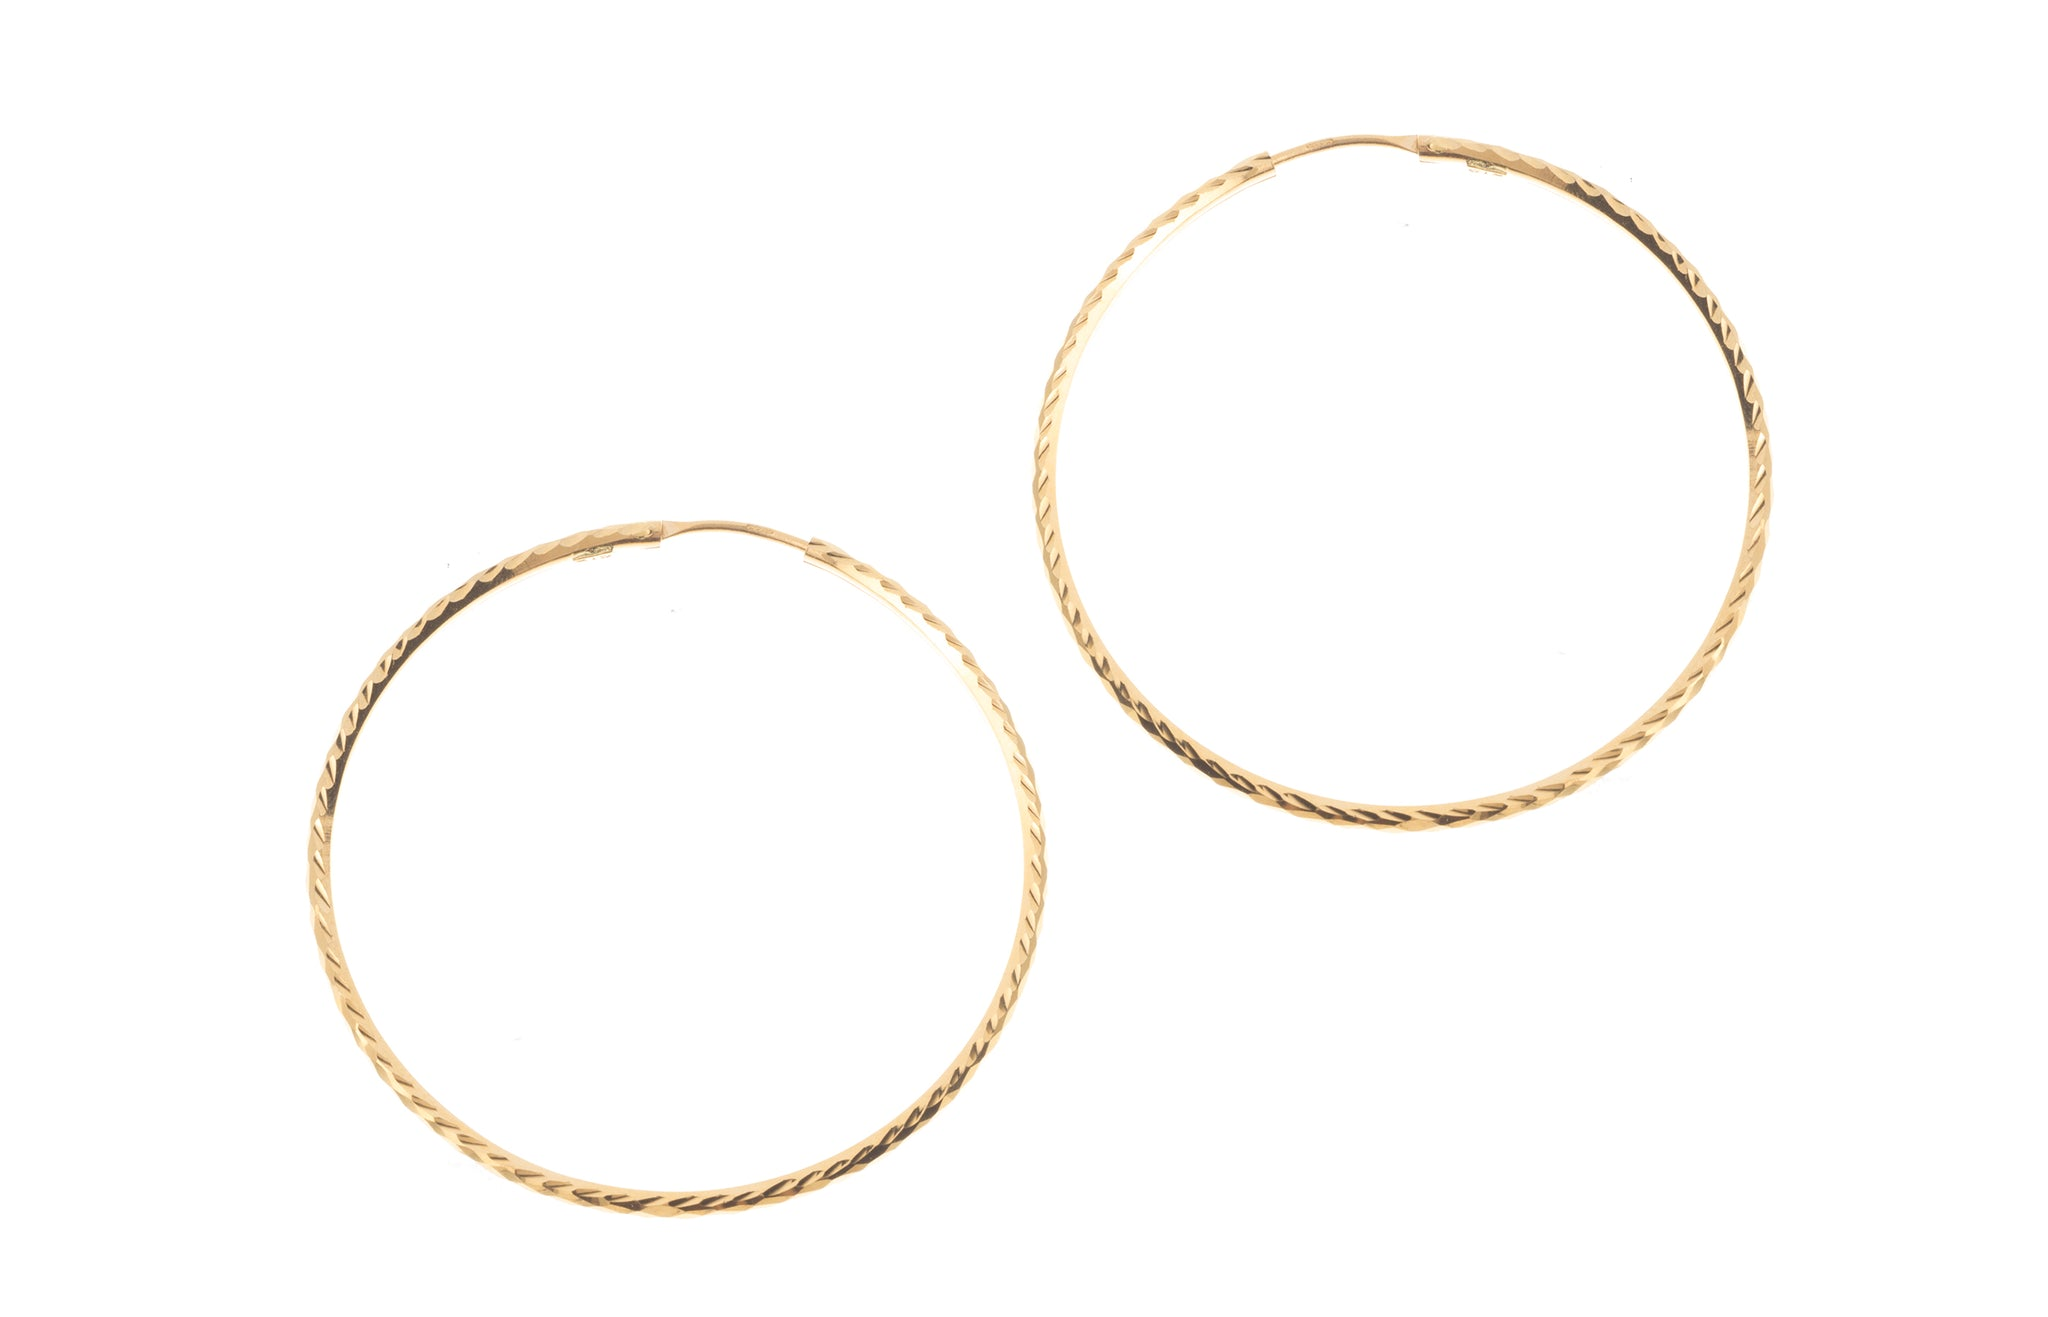 22ct Plain Gold Hoop Earrings (7.8g) E-7137